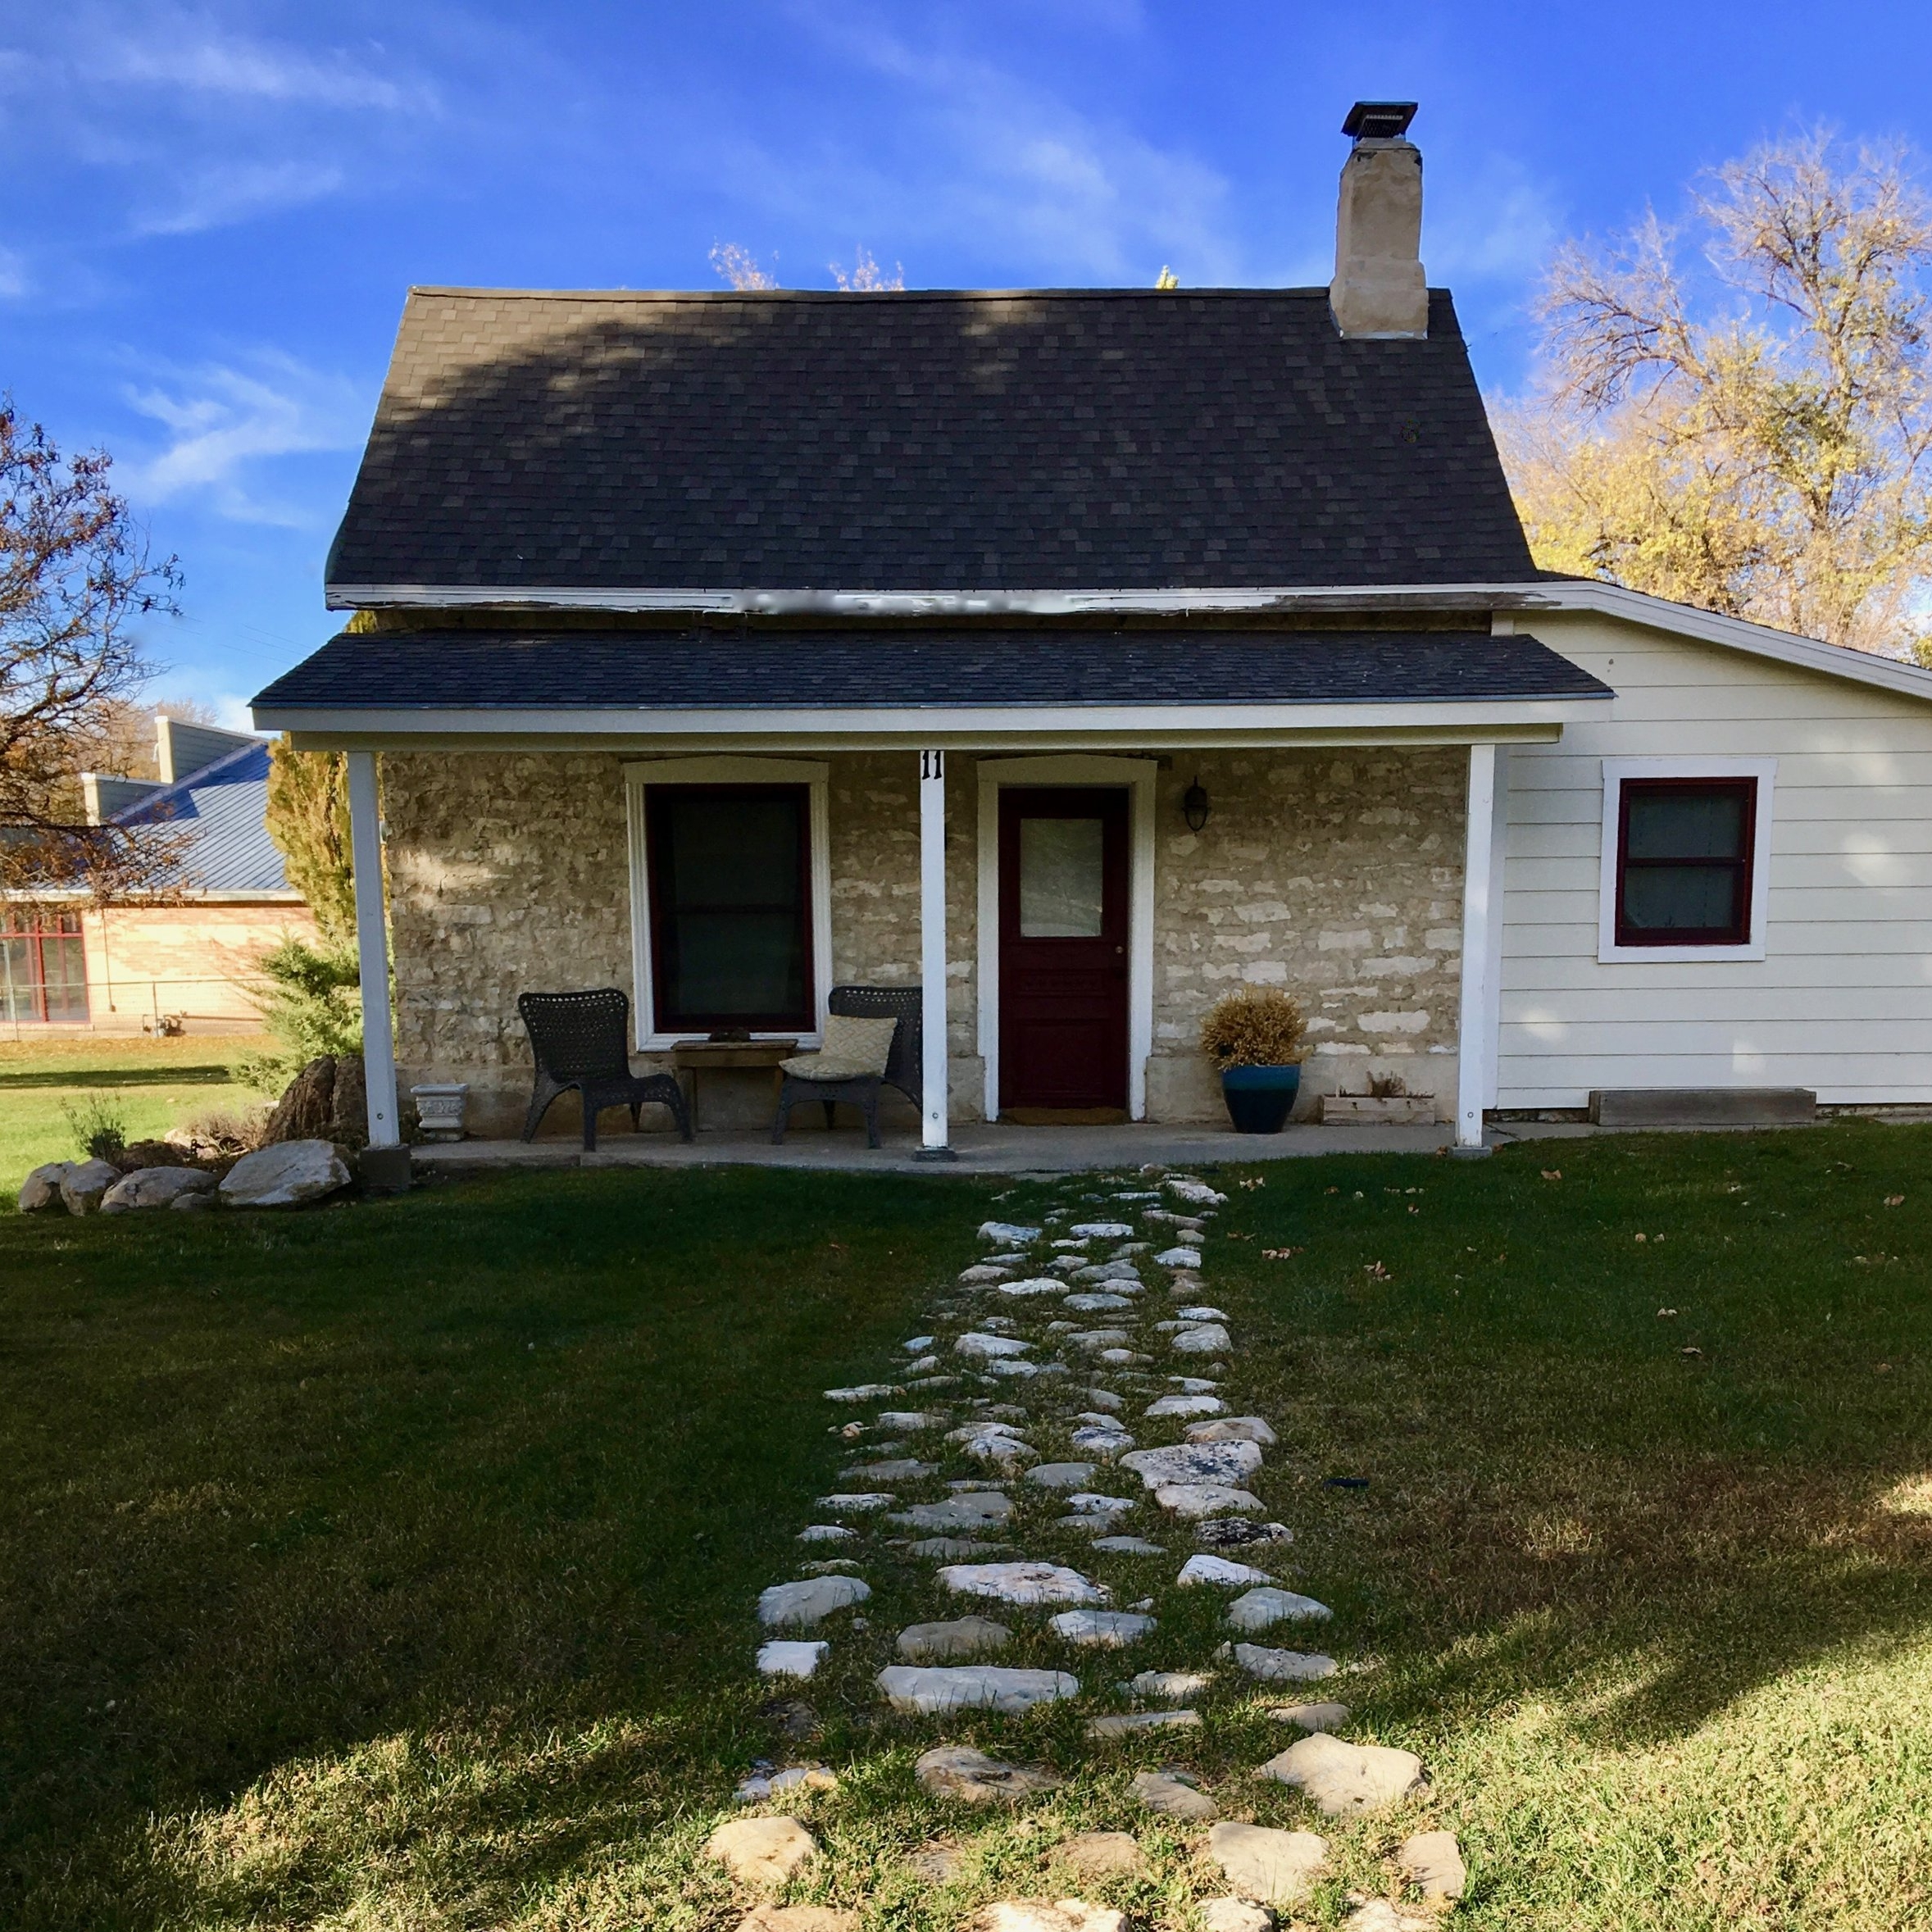 Add The Stone Cottage - Sleeps 2-4As a Bridal Suite or Honeymoon Cottage$200 per night